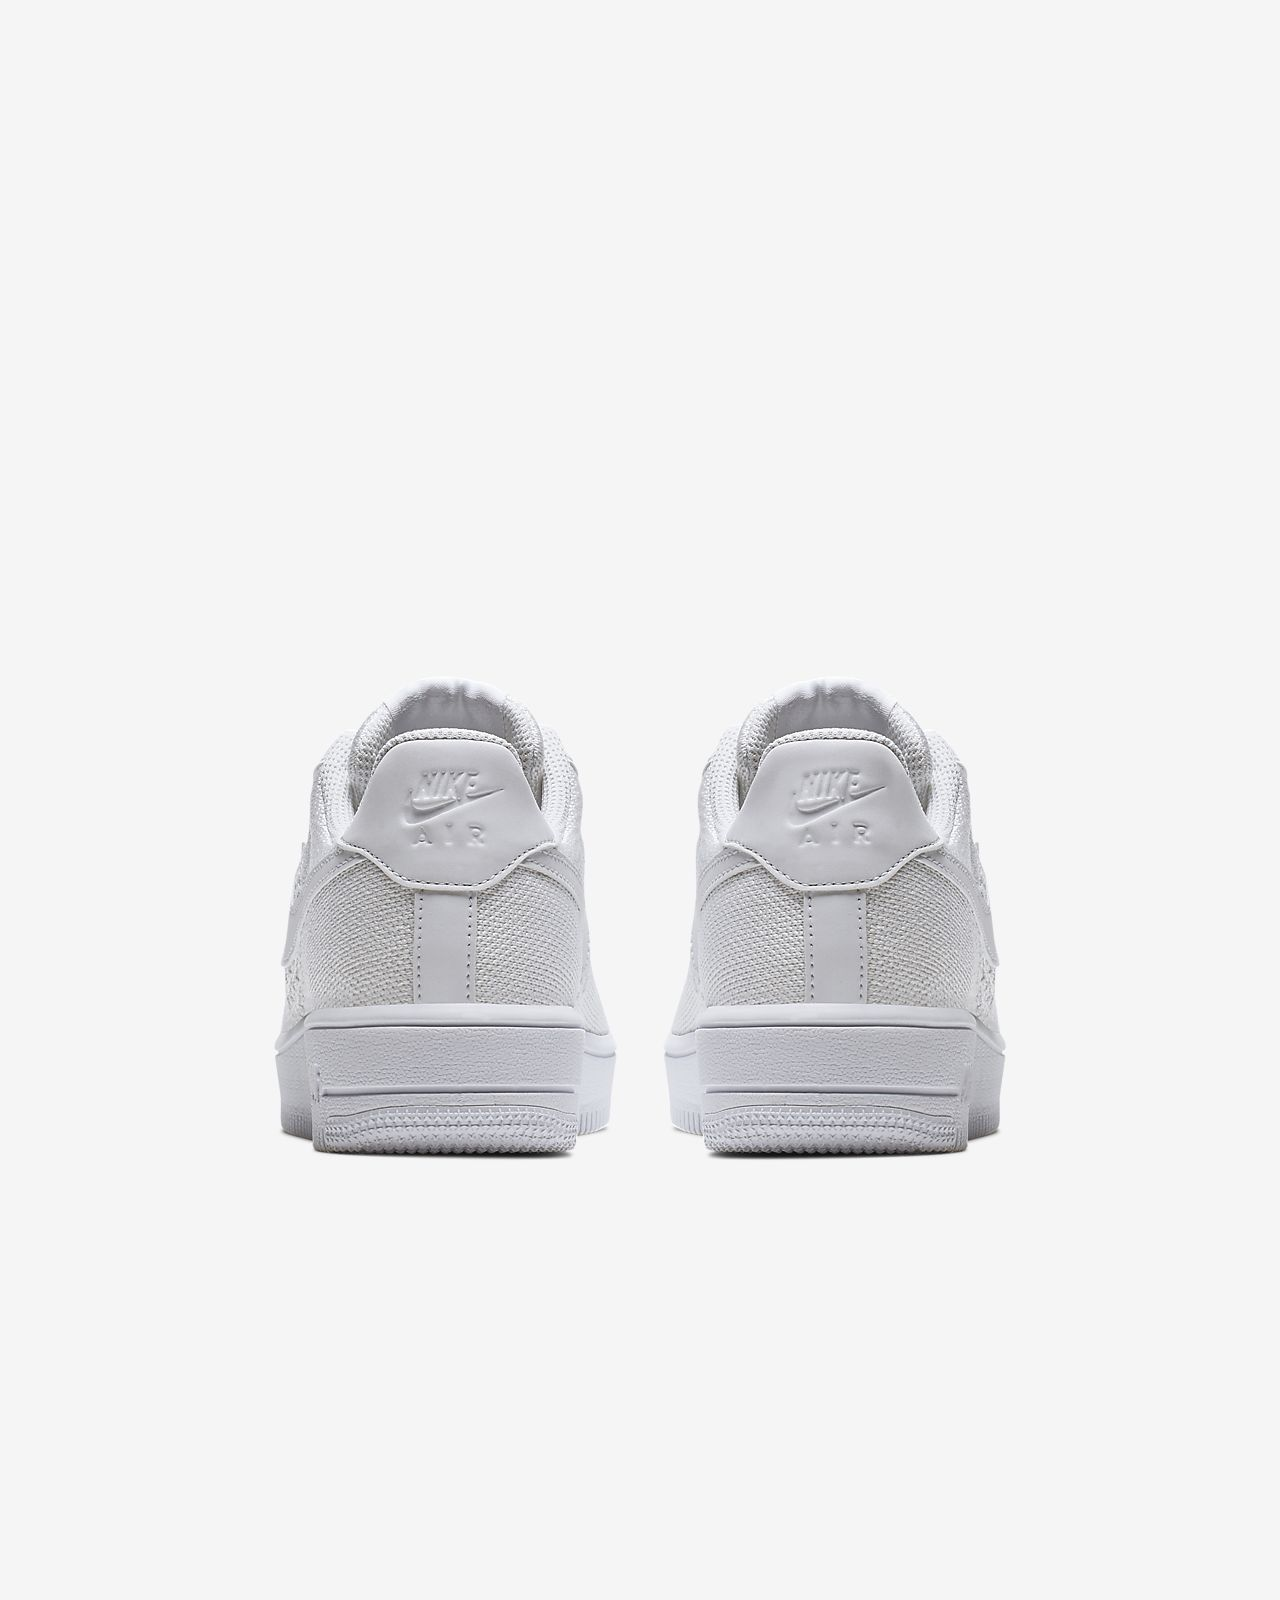 952f0c87183490 Nike Air Force 1 Flyknit 2.0 Younger Older Kids  Shoe. Nike.com AU